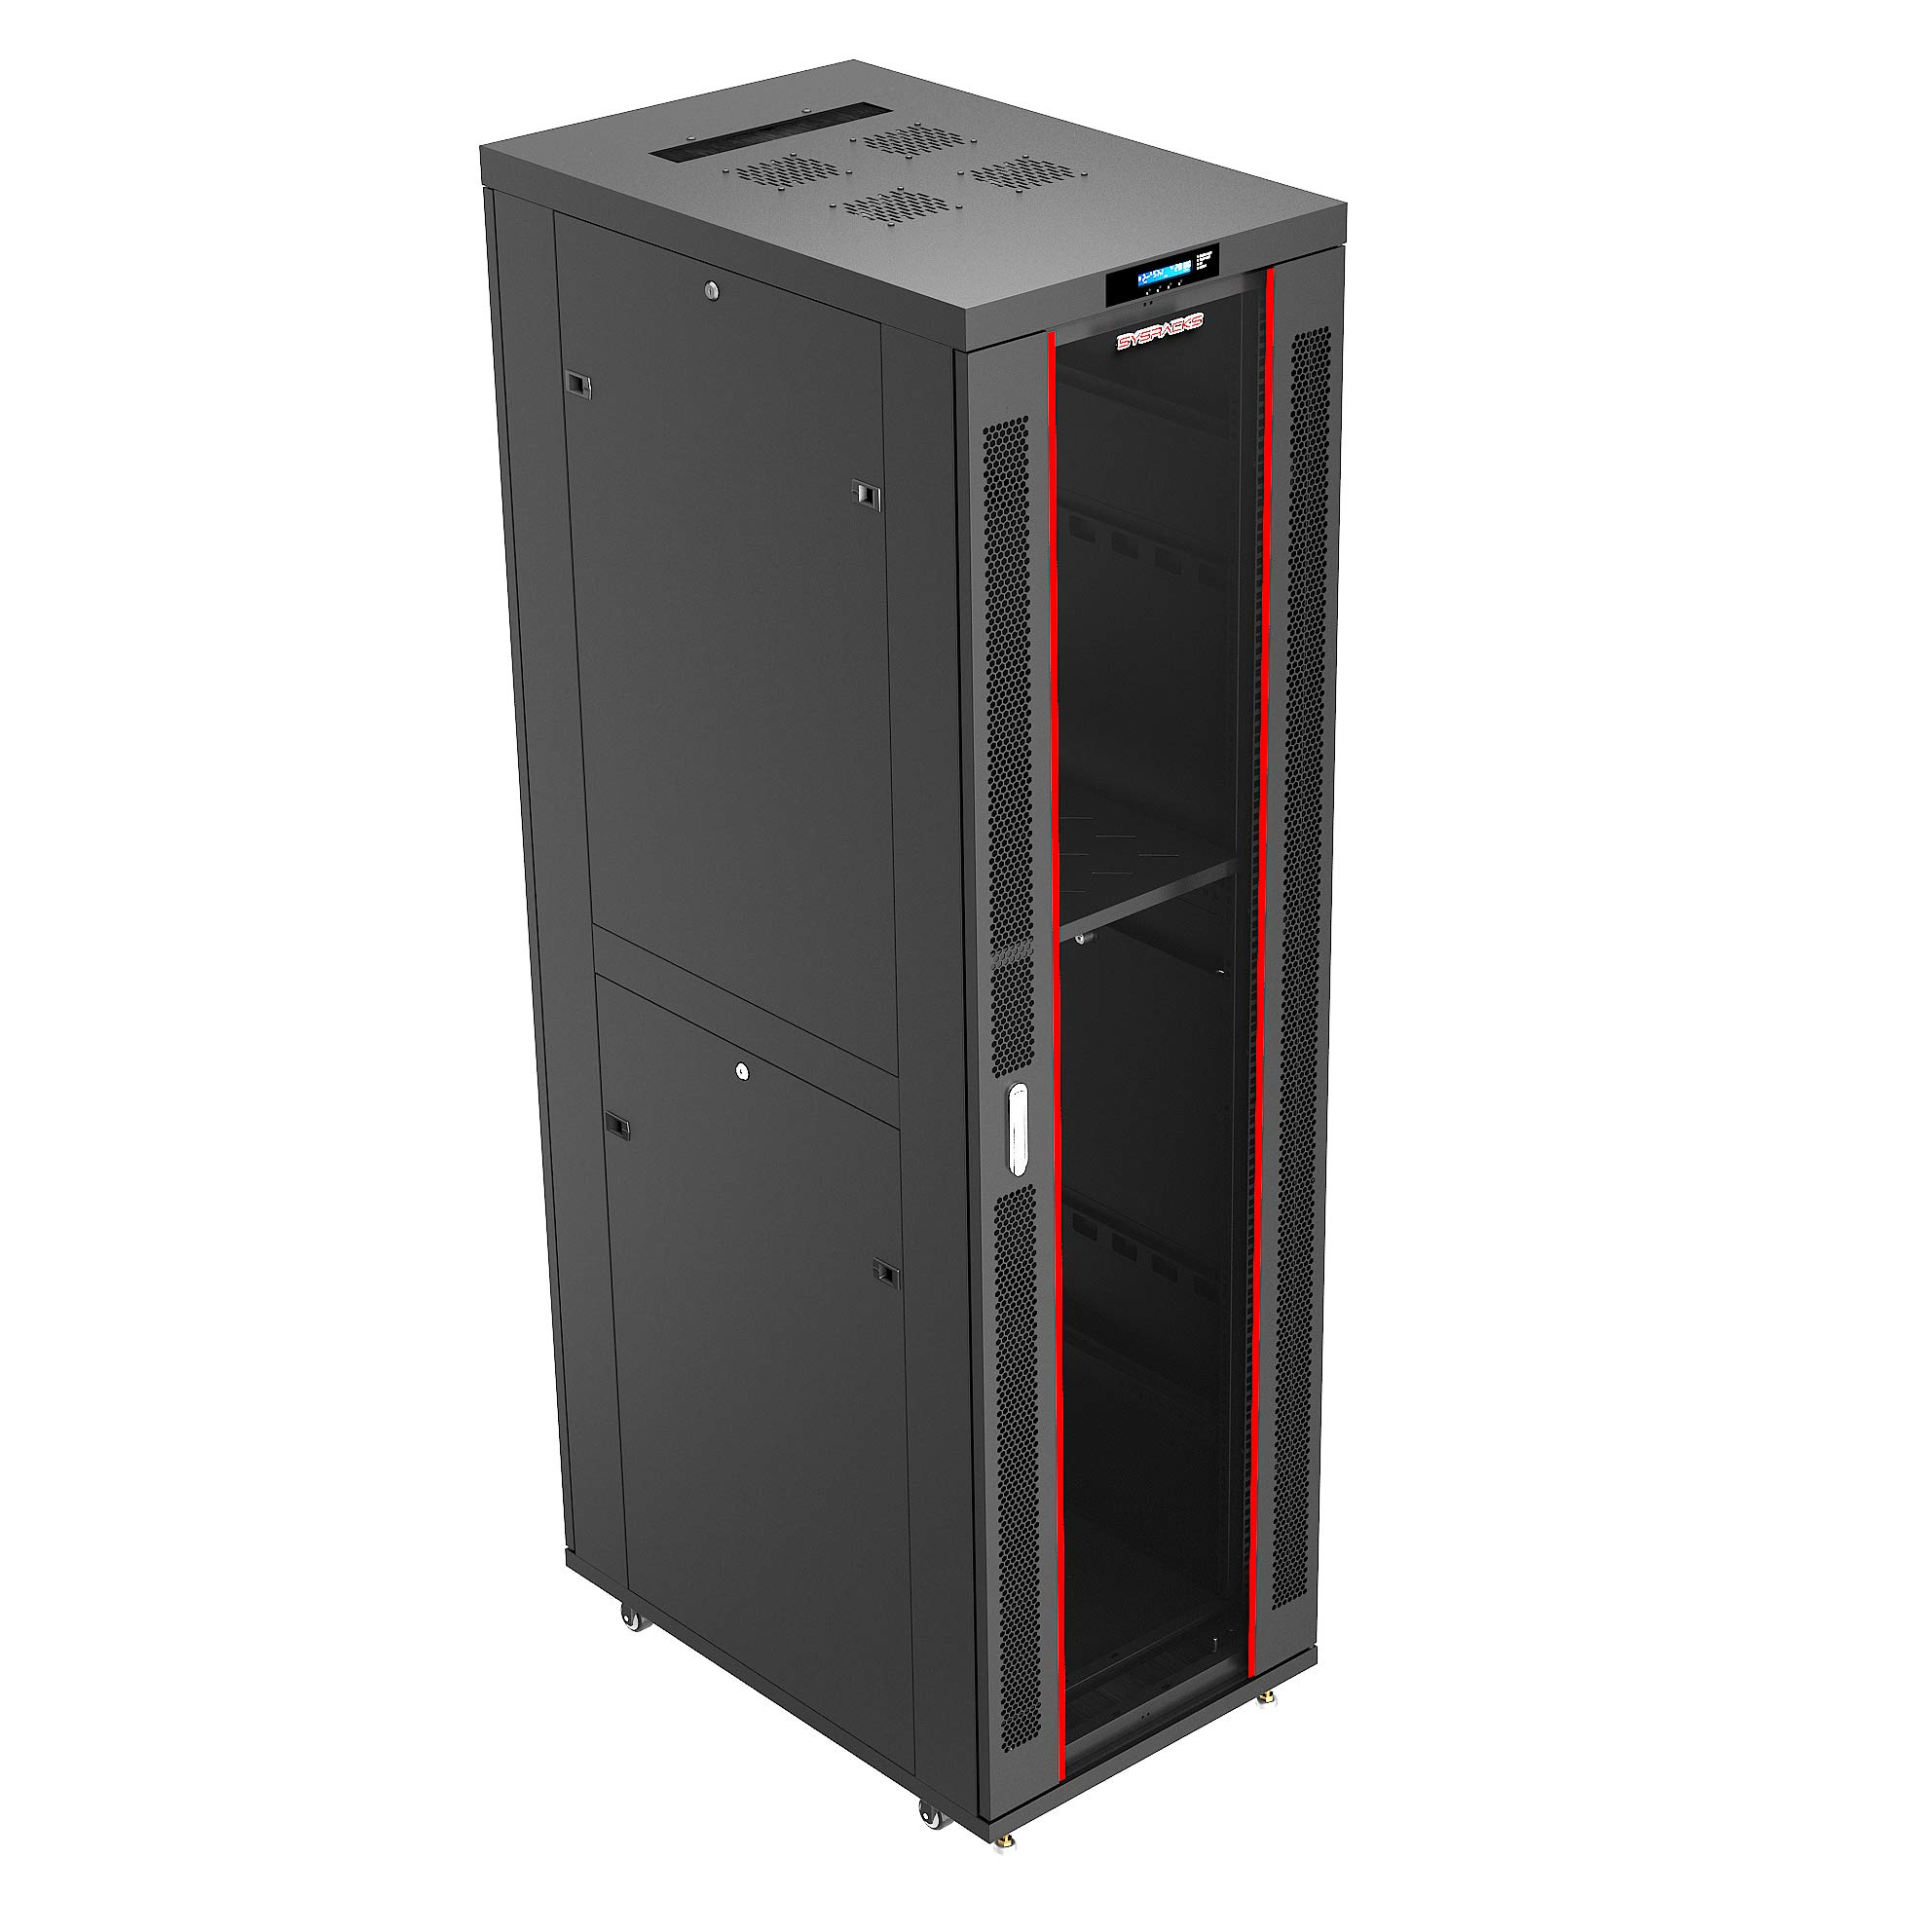 42U it Standing Server Rack Cabinet Enclosure. Fits Most 19'' Equipment. Bonus Temperature Control System, Casters, LED-Screen, PDU and Other Accessories Included